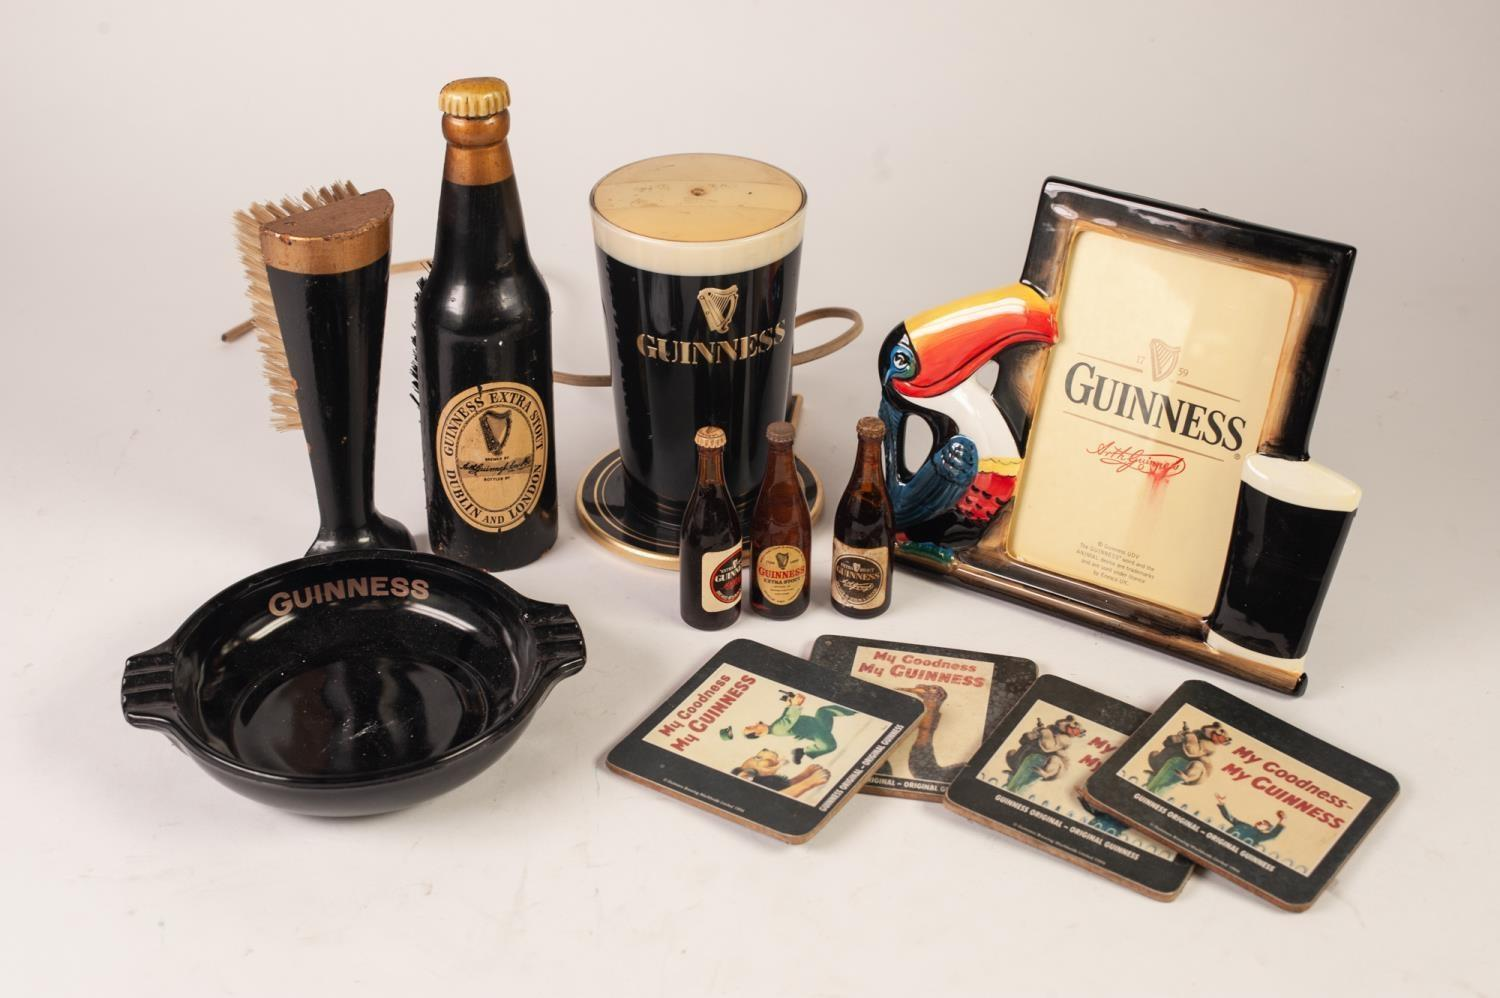 Lot 426 - GUINNESS RELATED COLLECTABLES to include; pottery Toucan easel photo frame with oblong aperture,